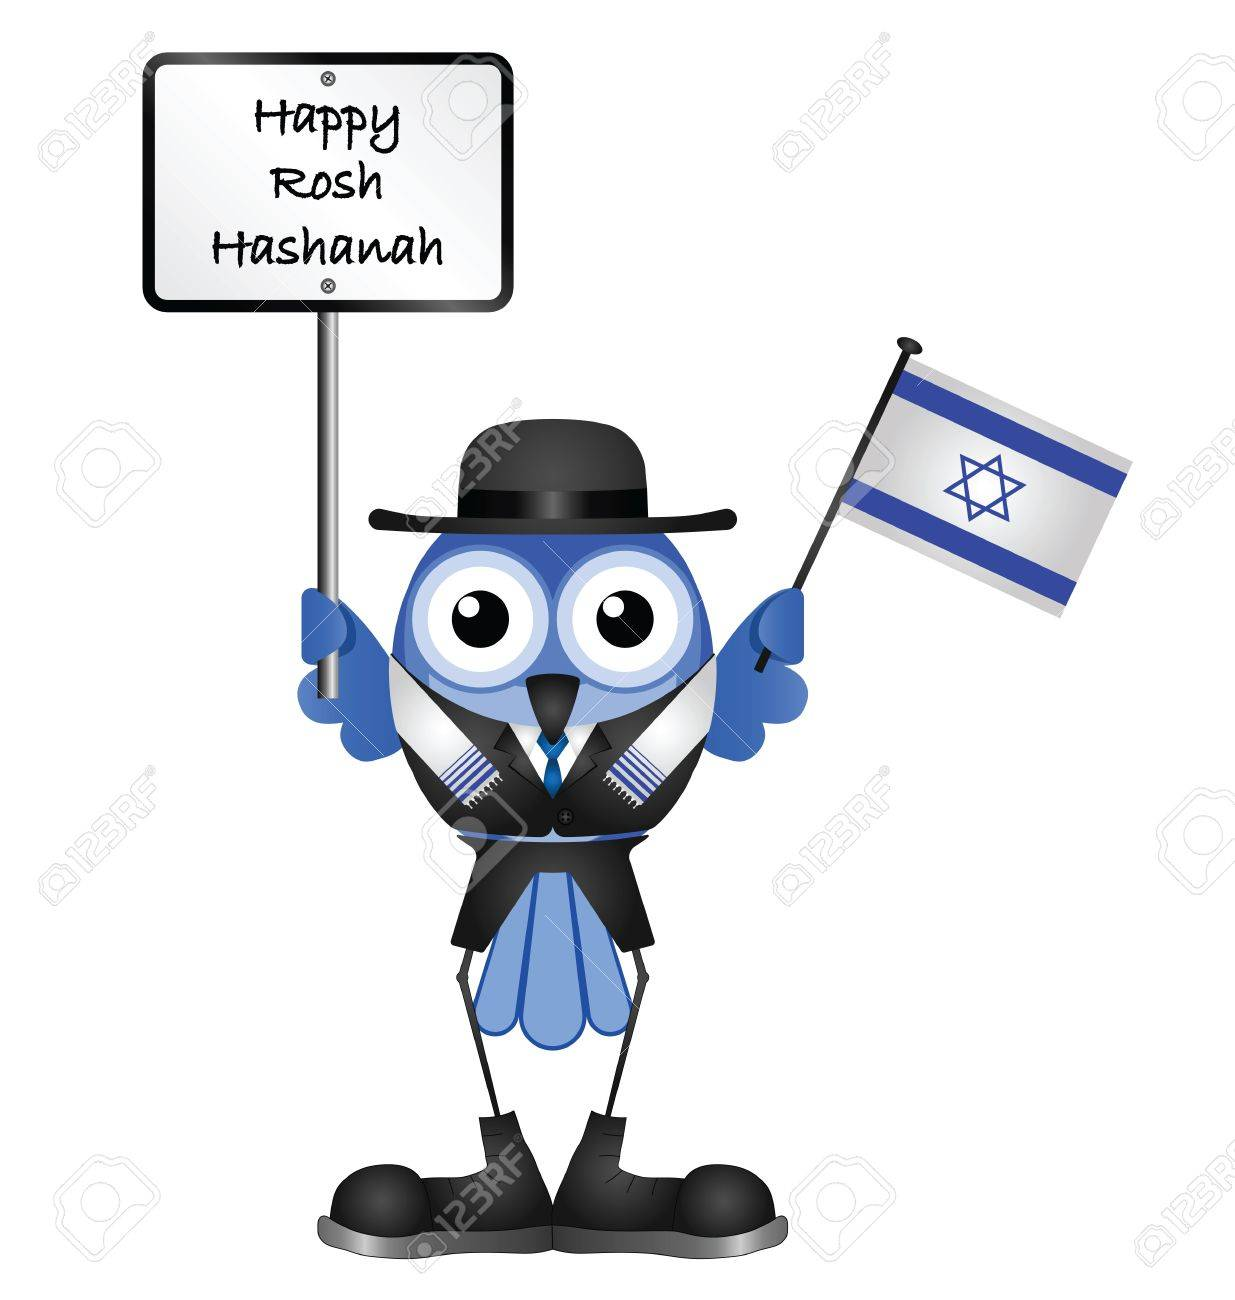 Happy Rosh Hashanah message isolated on white background Stock Vector - 15870421